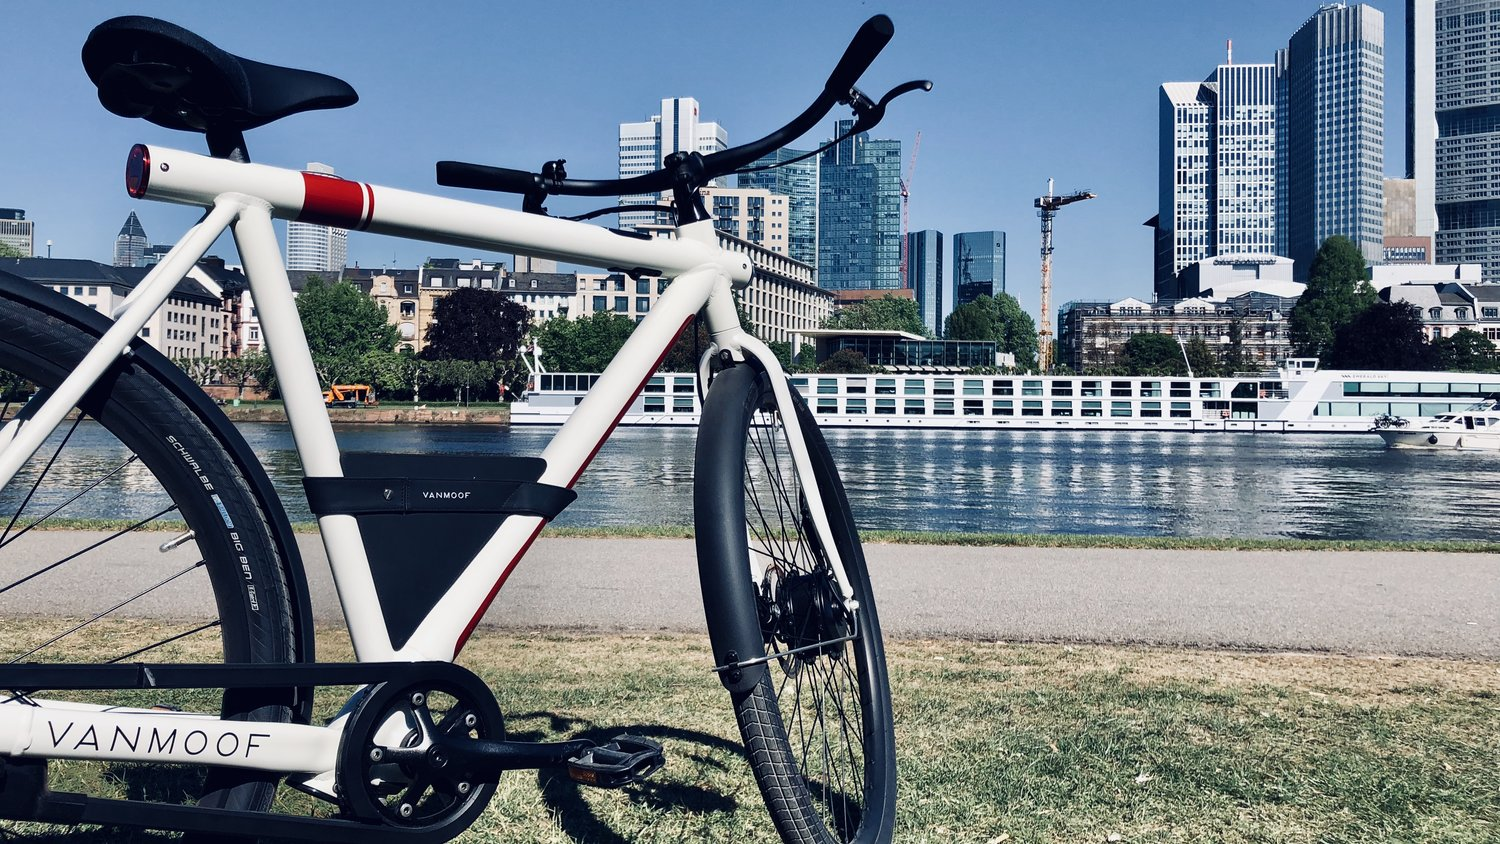 VanMoof 2017 Electrified S notes — The Rational Approach To Insanity